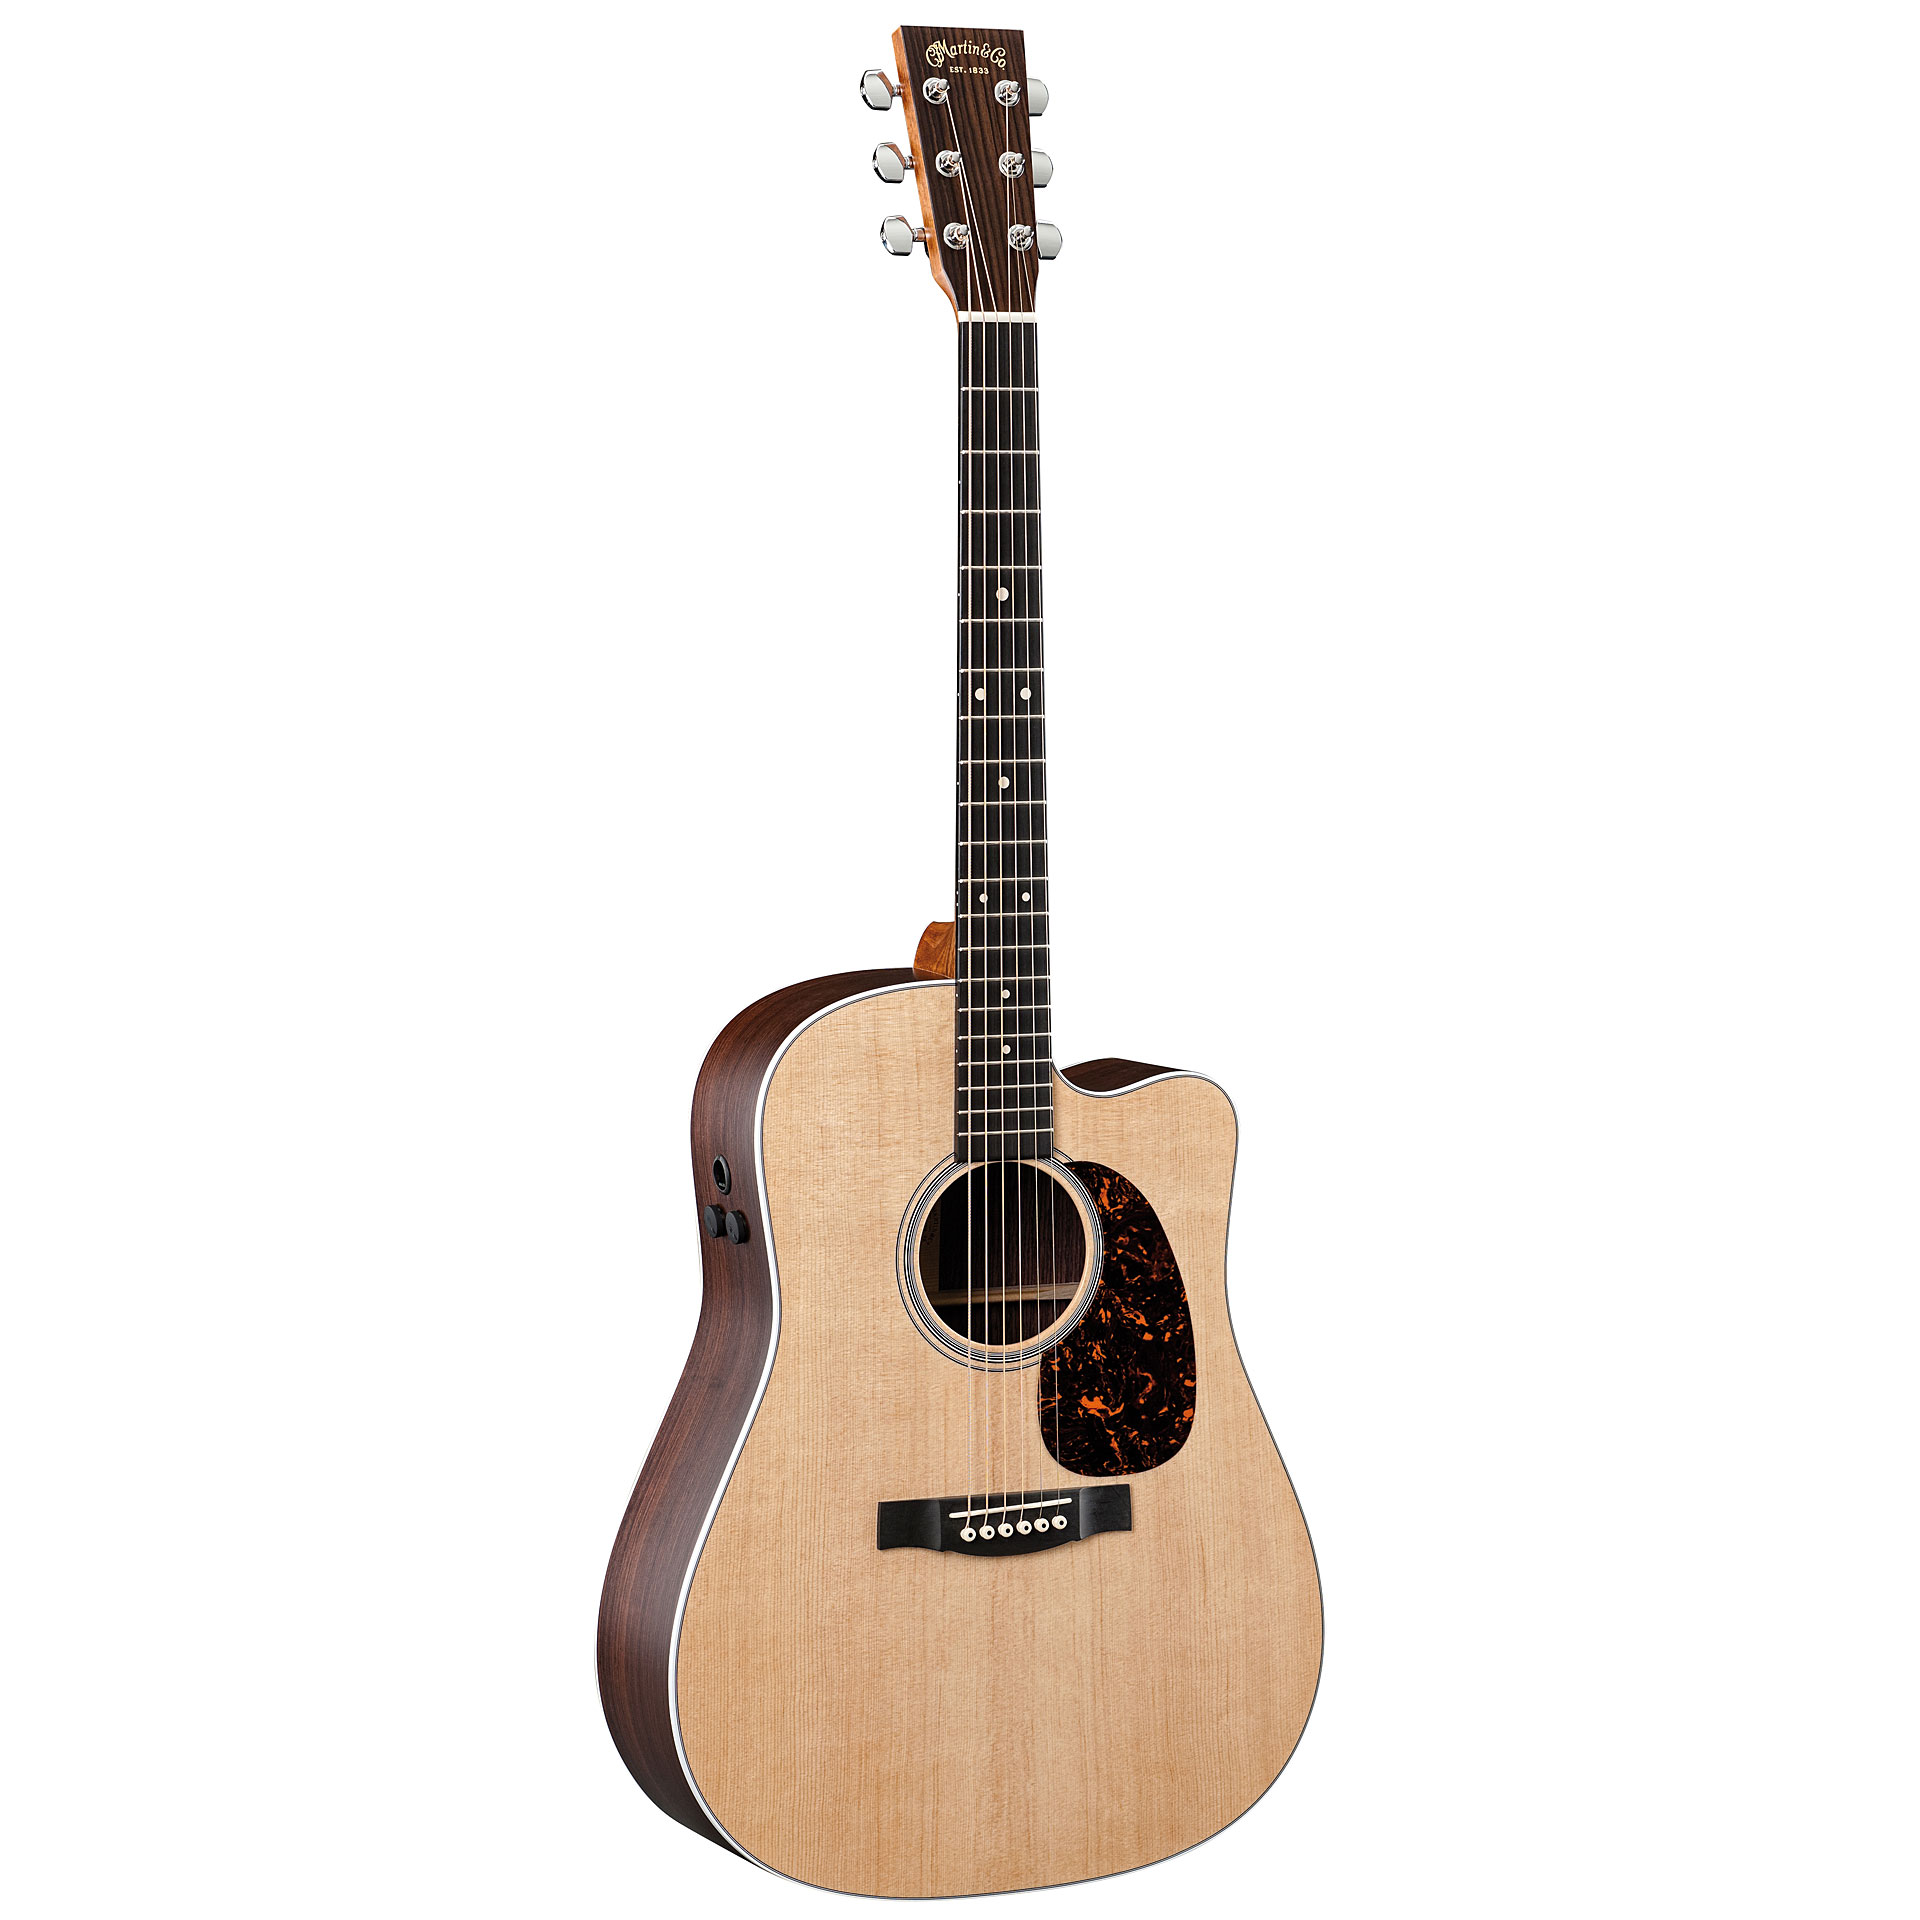 Martin guitars dcpa4 rosewood acoustic guitar for The rosewood